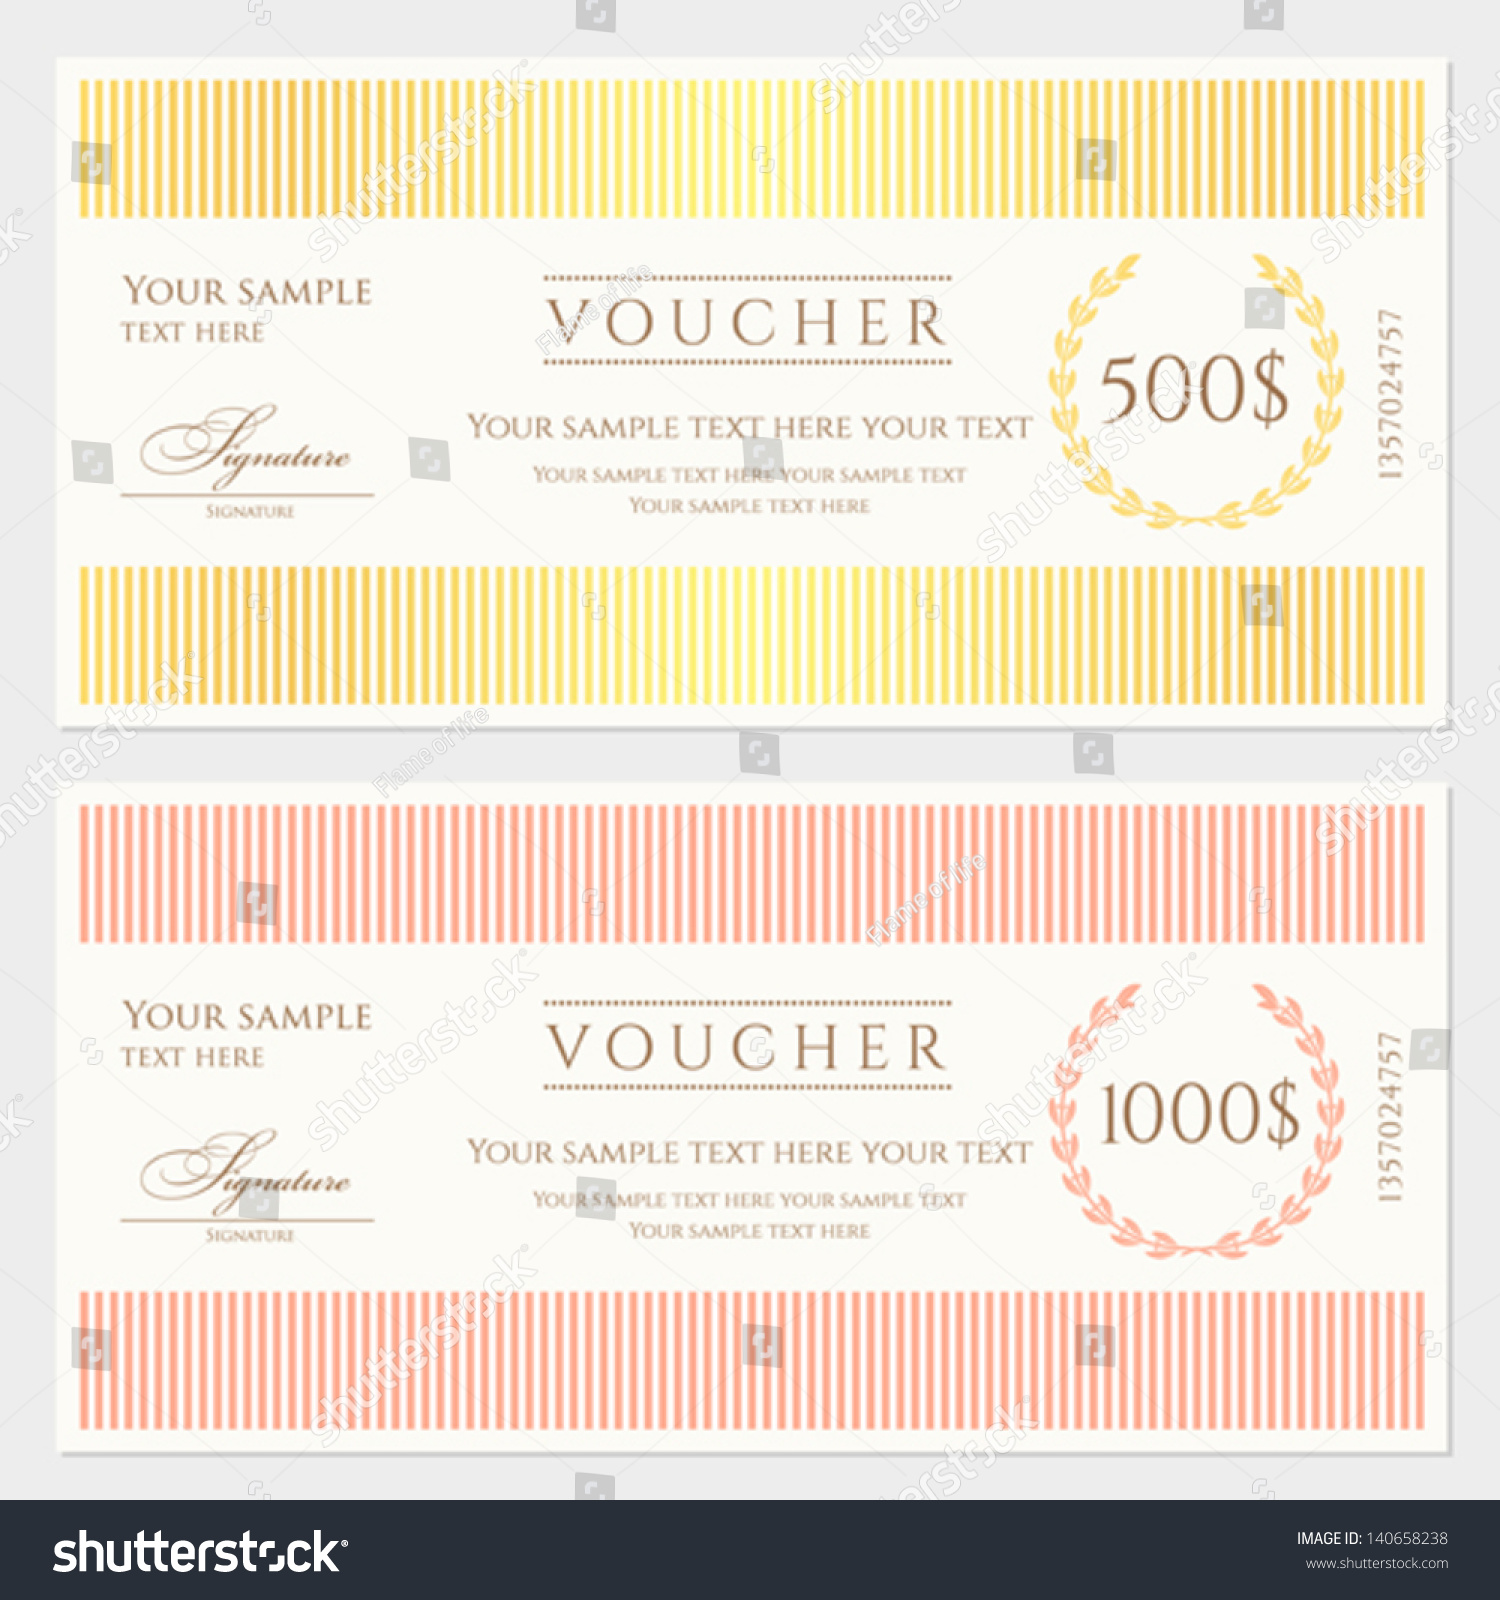 voucher gift certificate template colorful stripy pattern voucher gift certificate template colorful stripy pattern and border background usable for coupon banknote money design currency note ticket